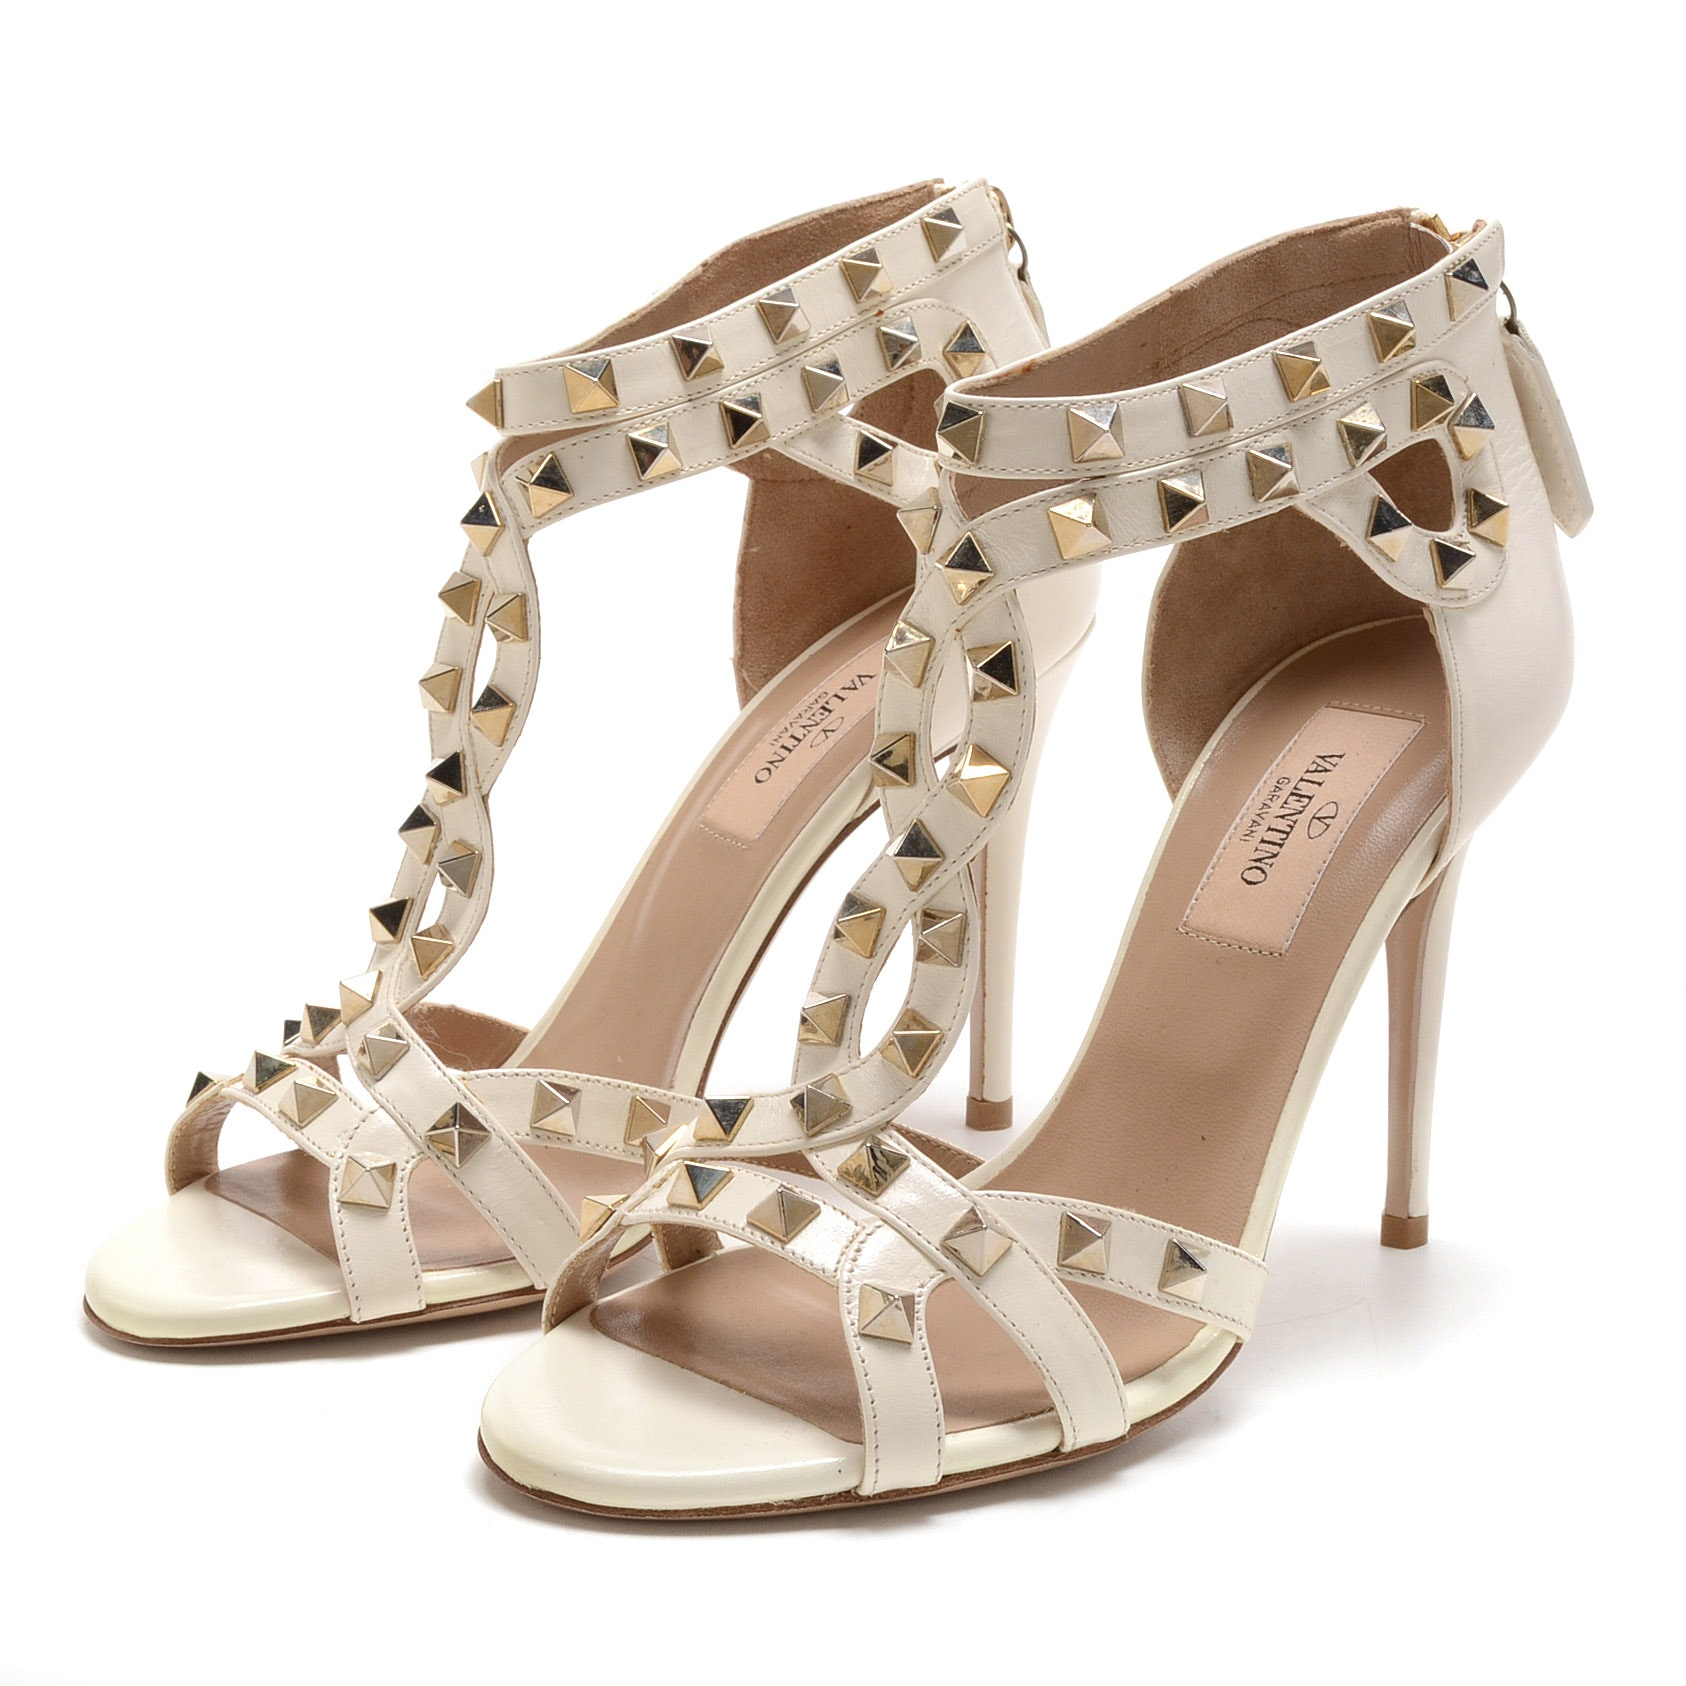 Valentino Garavani Ivory Leather Studded Open Toe Dress Sandals with Stiletto Heel